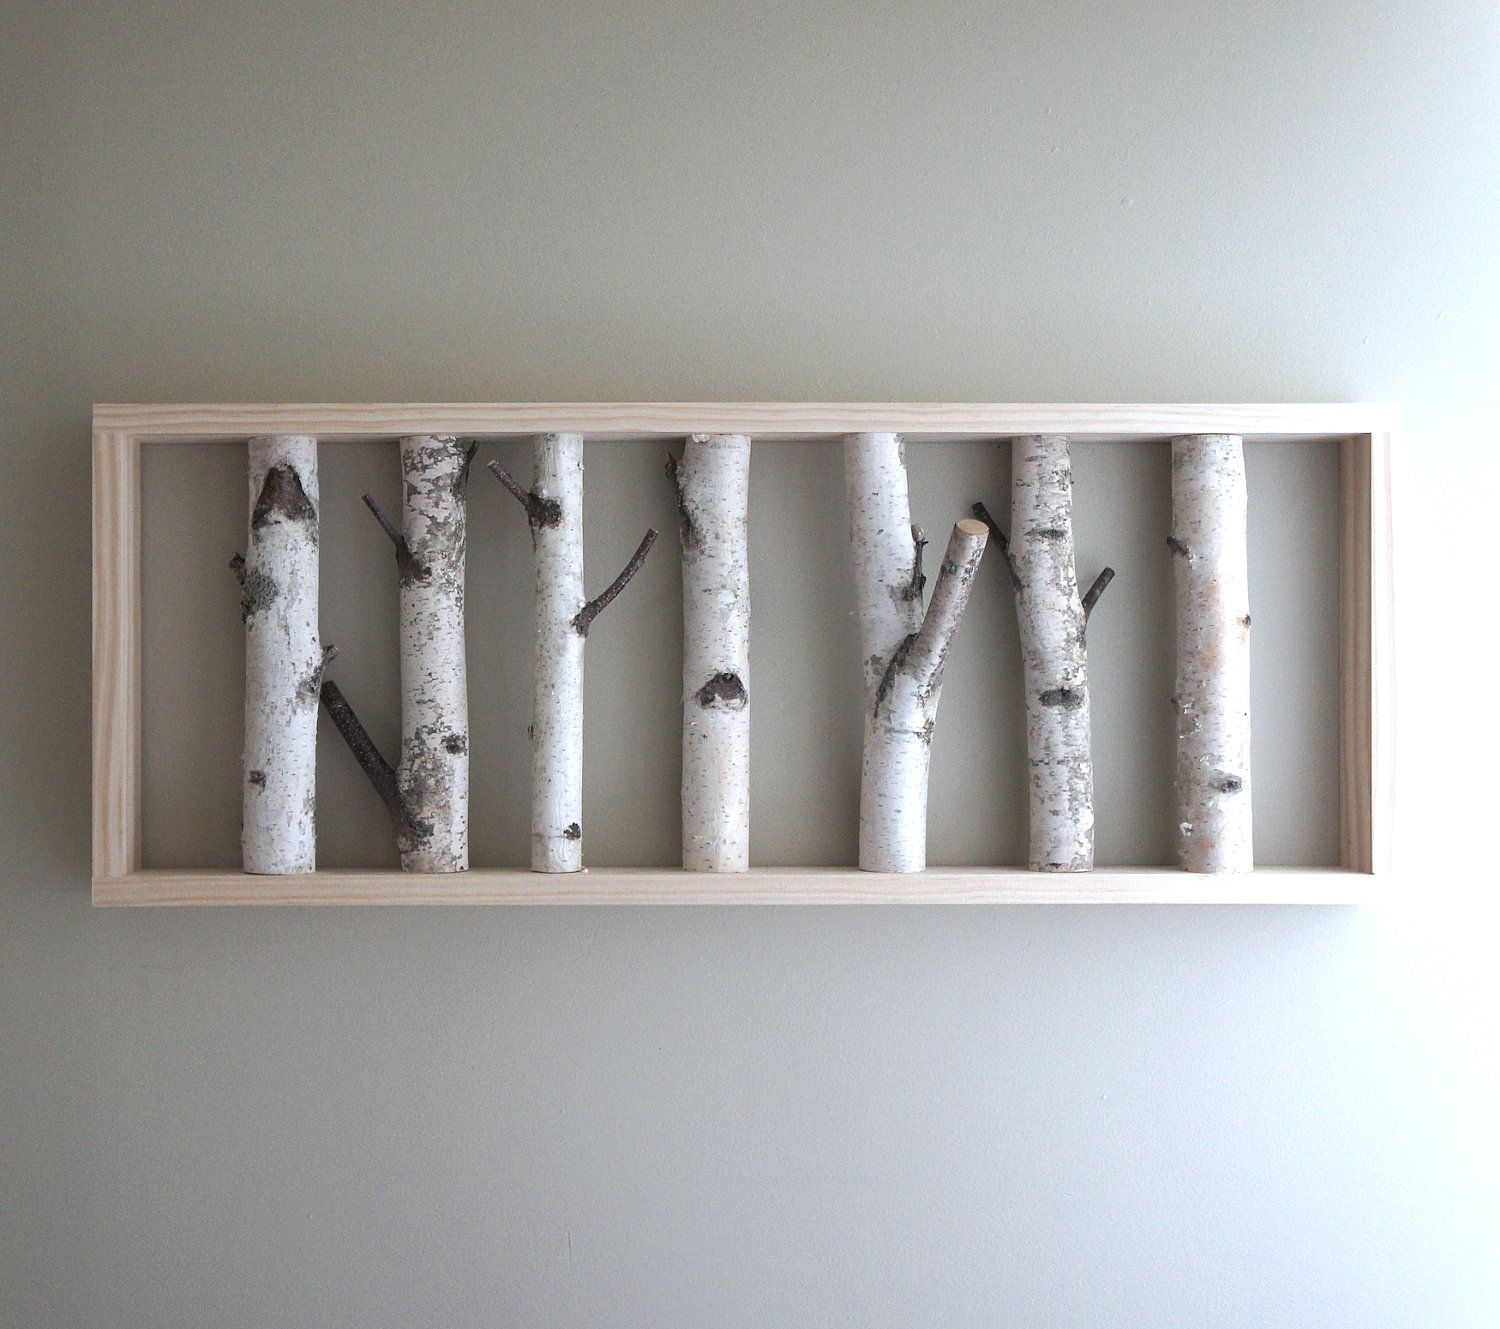 White birch forest wall art 36 x 12 birch branch decor for Diy birch tree wall mural